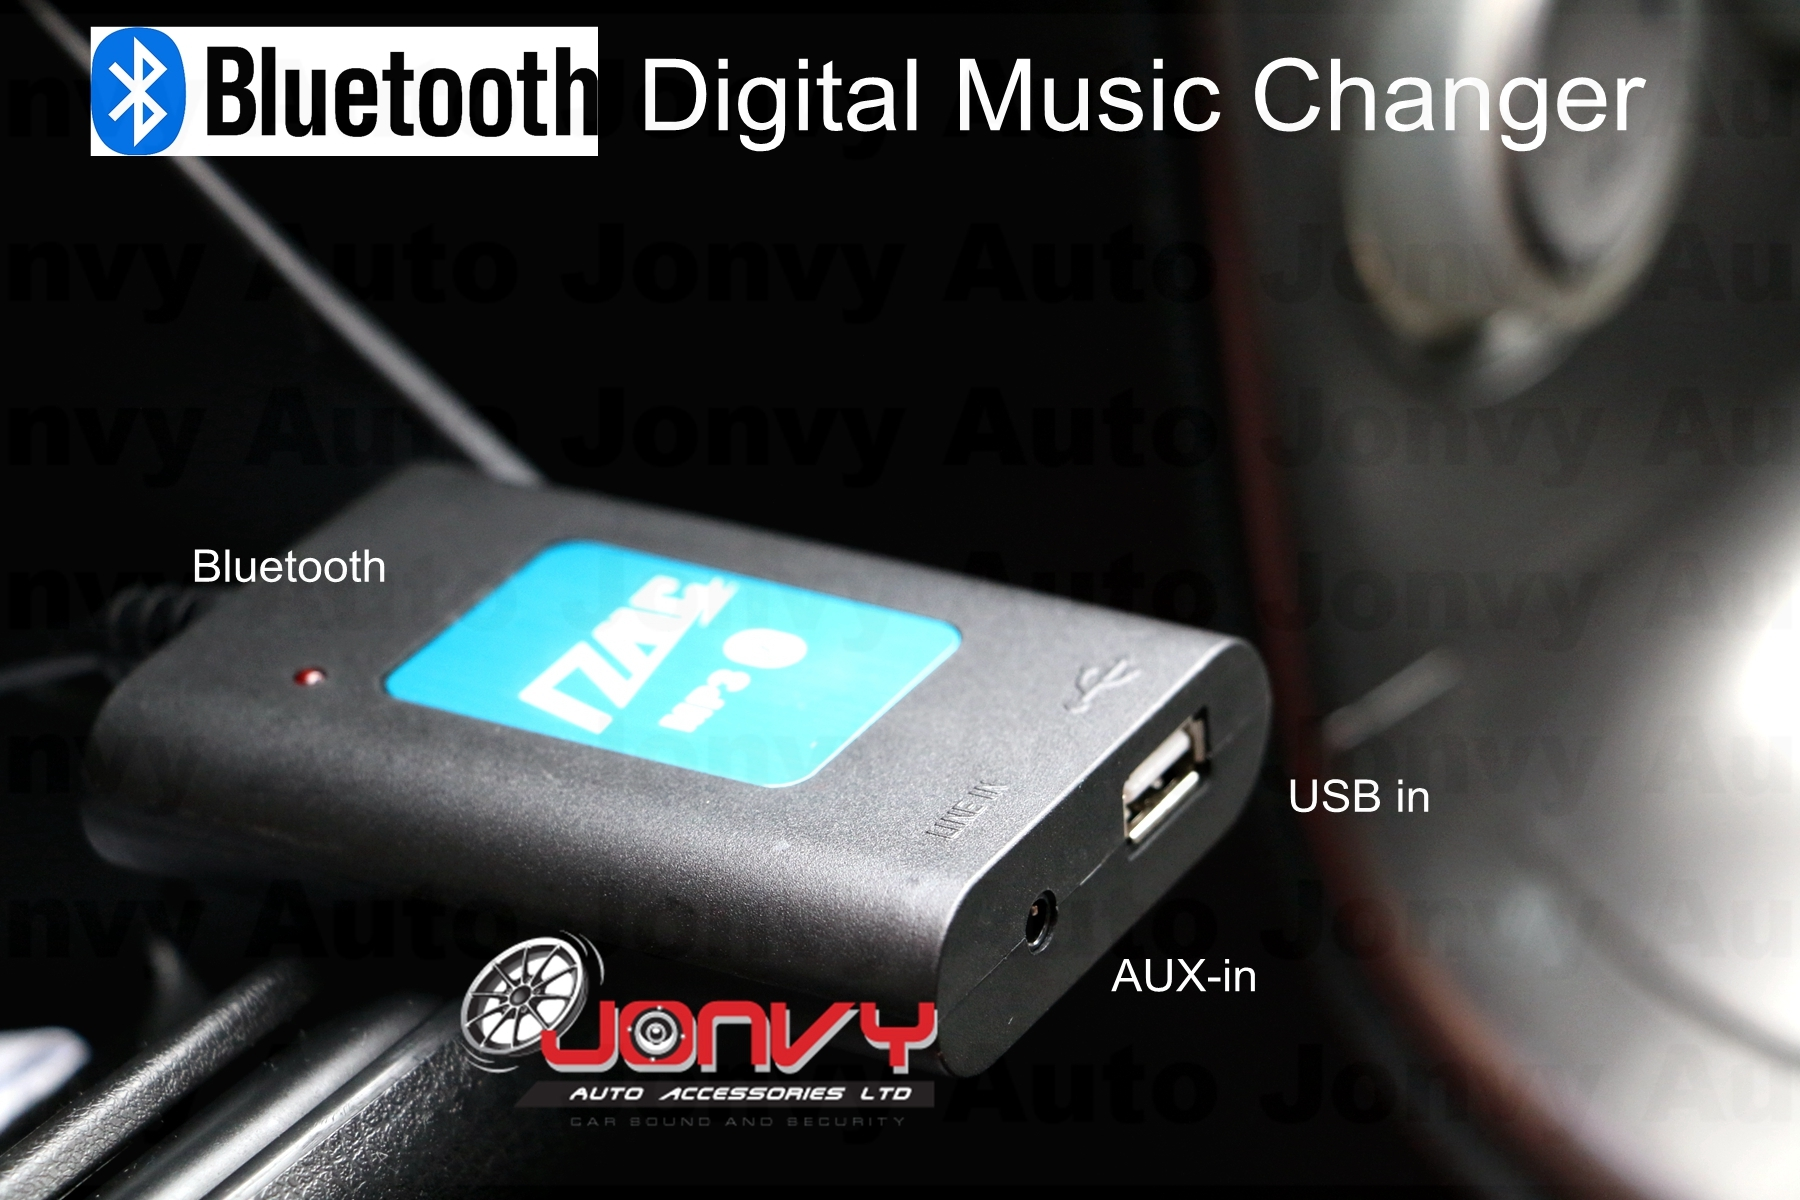 Jonvy Auto Digital Music Changer Subaru Mcintosh Usb Aux Bt For Wiring Click Image To Enlarge